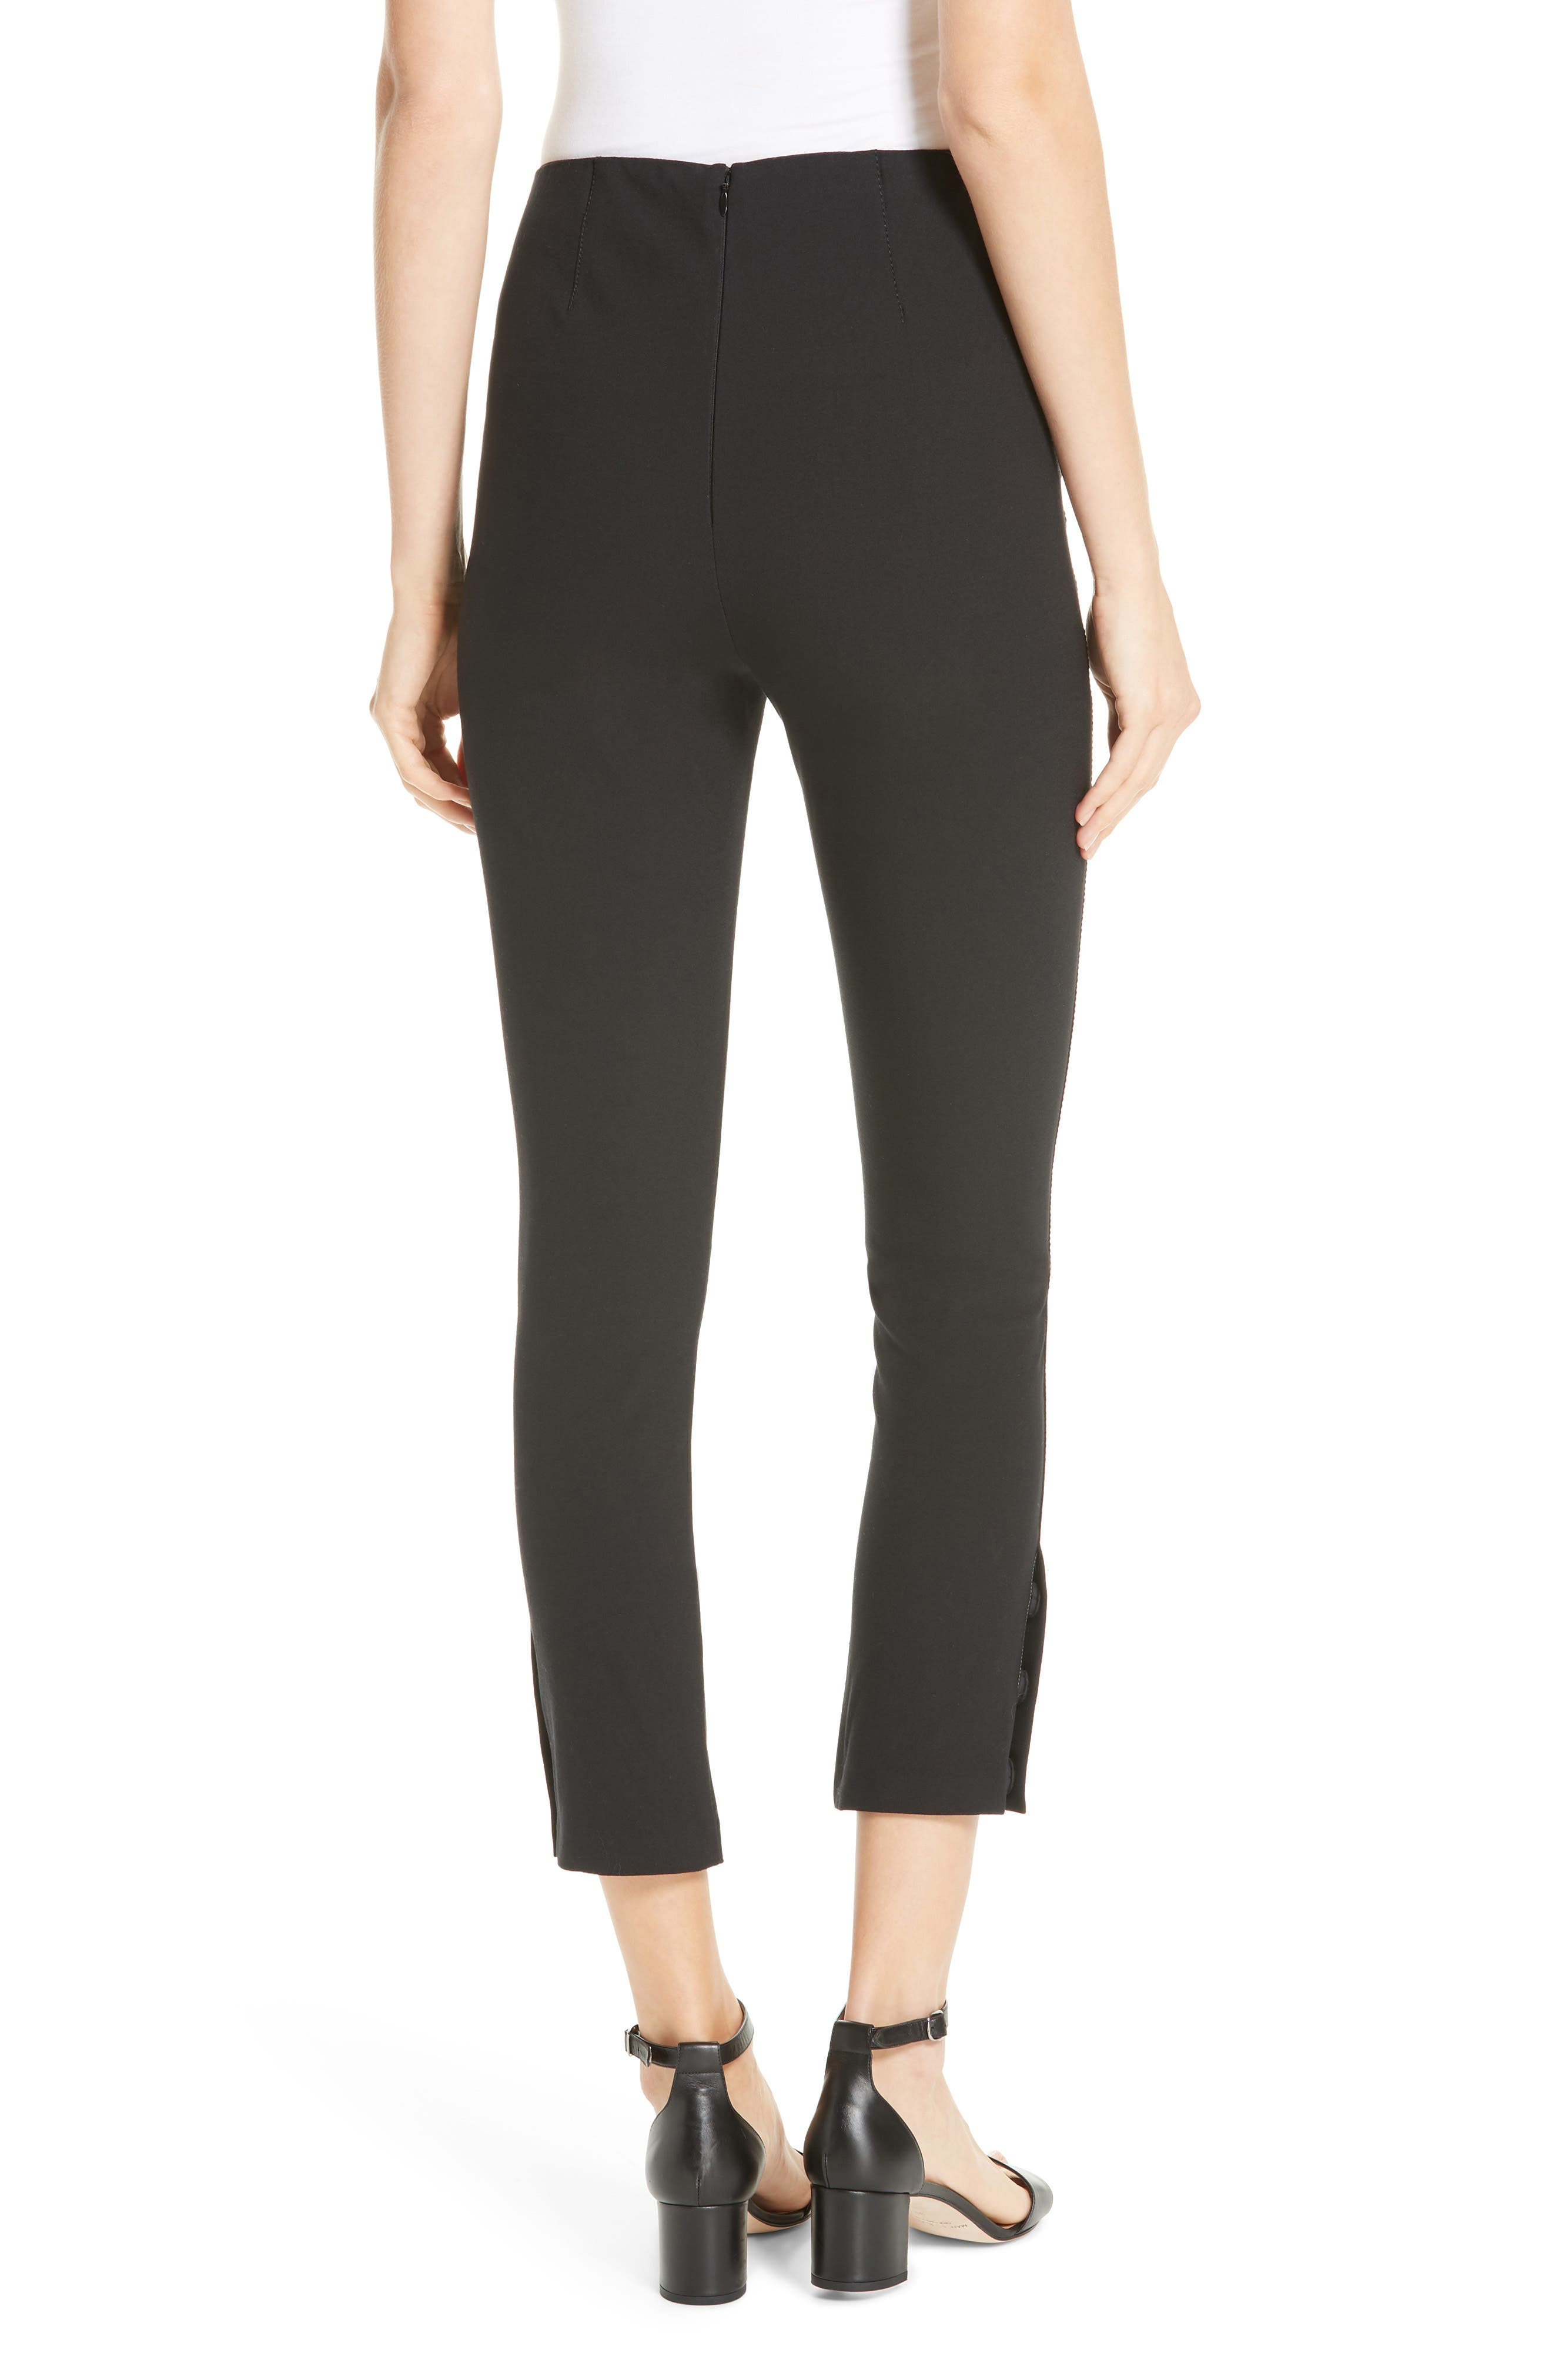 DEREK LAM 10 CROSBY,                             Sullivan Leggings,                             Alternate thumbnail 2, color,                             BLACK